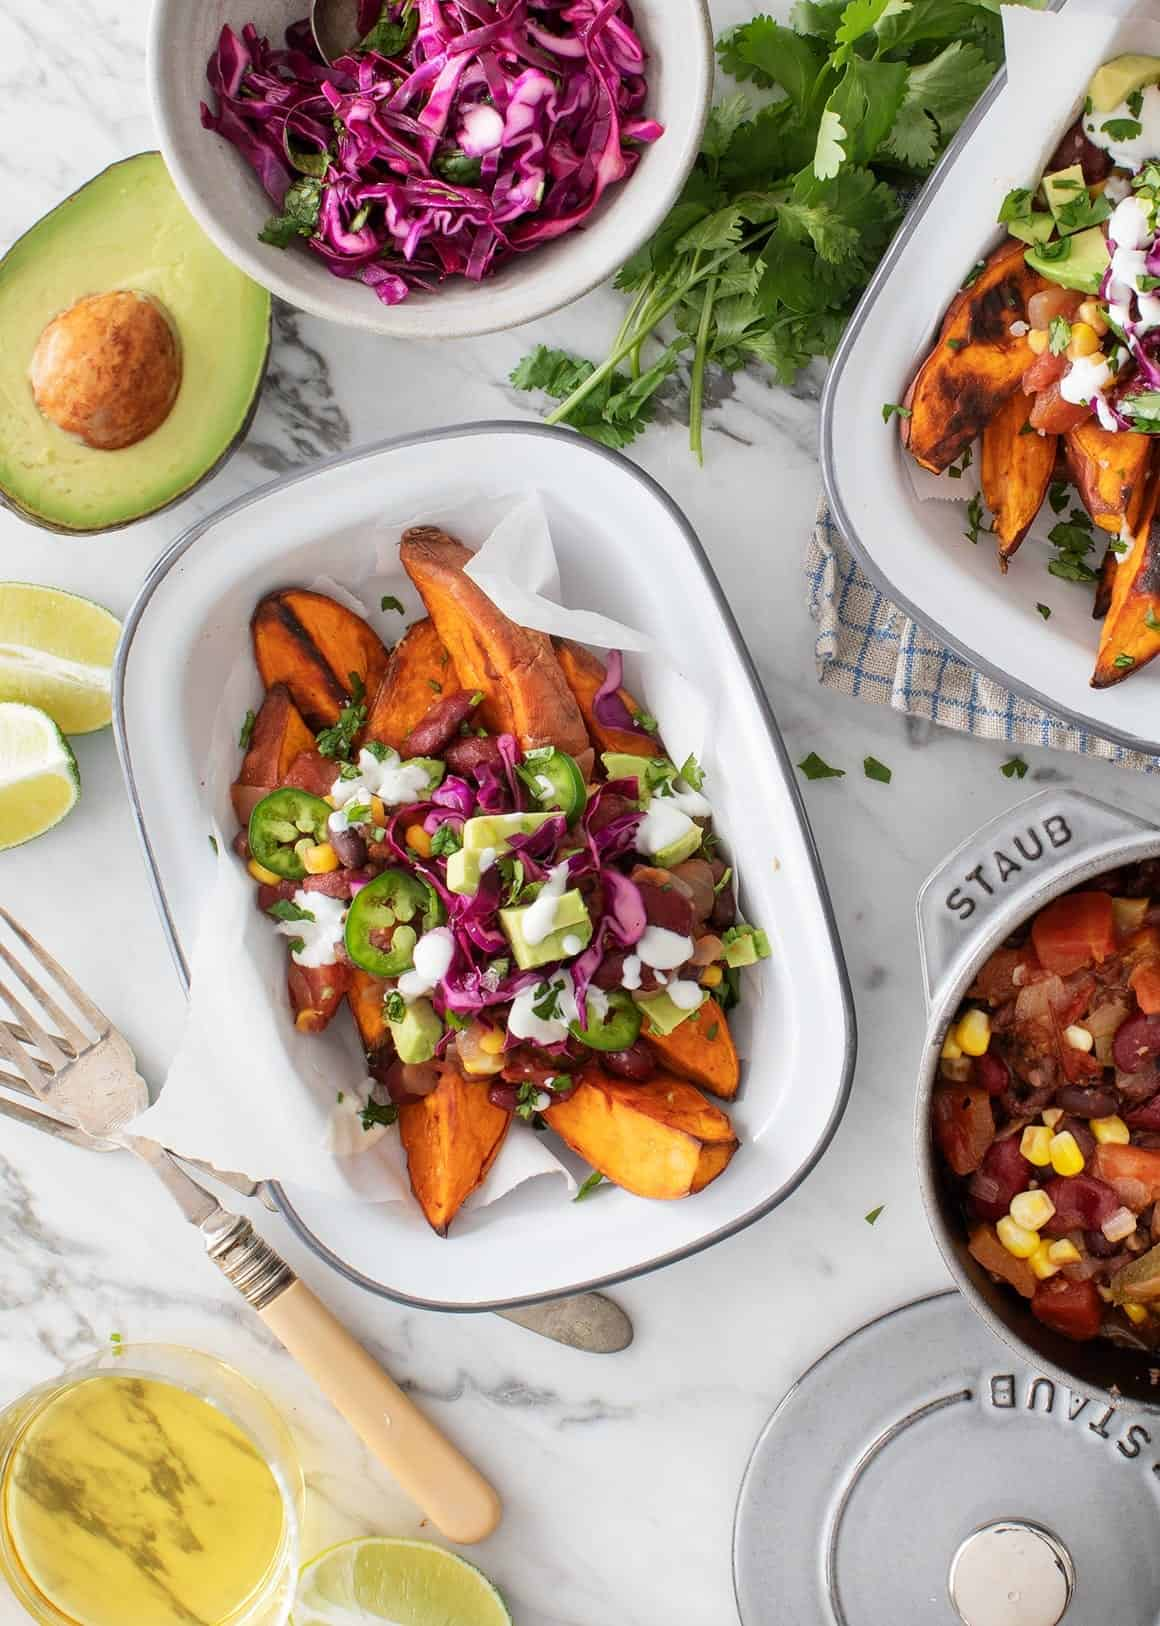 Healthy Game Day Recipes - Sweet Potato Chili Fries